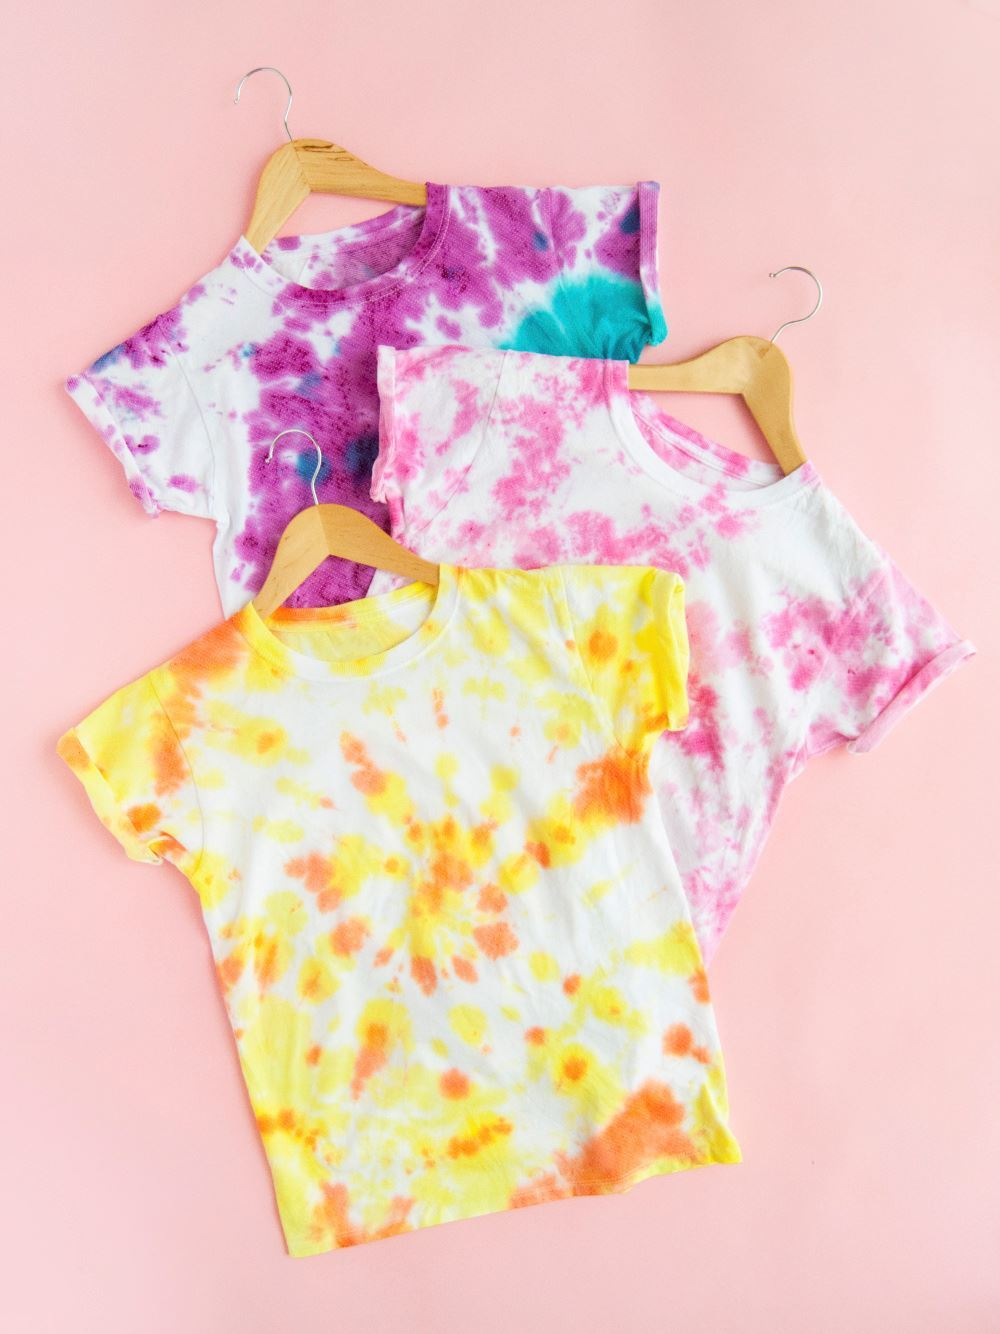 Candy-Inspired Two-Minute Tie-Dye T-shirts